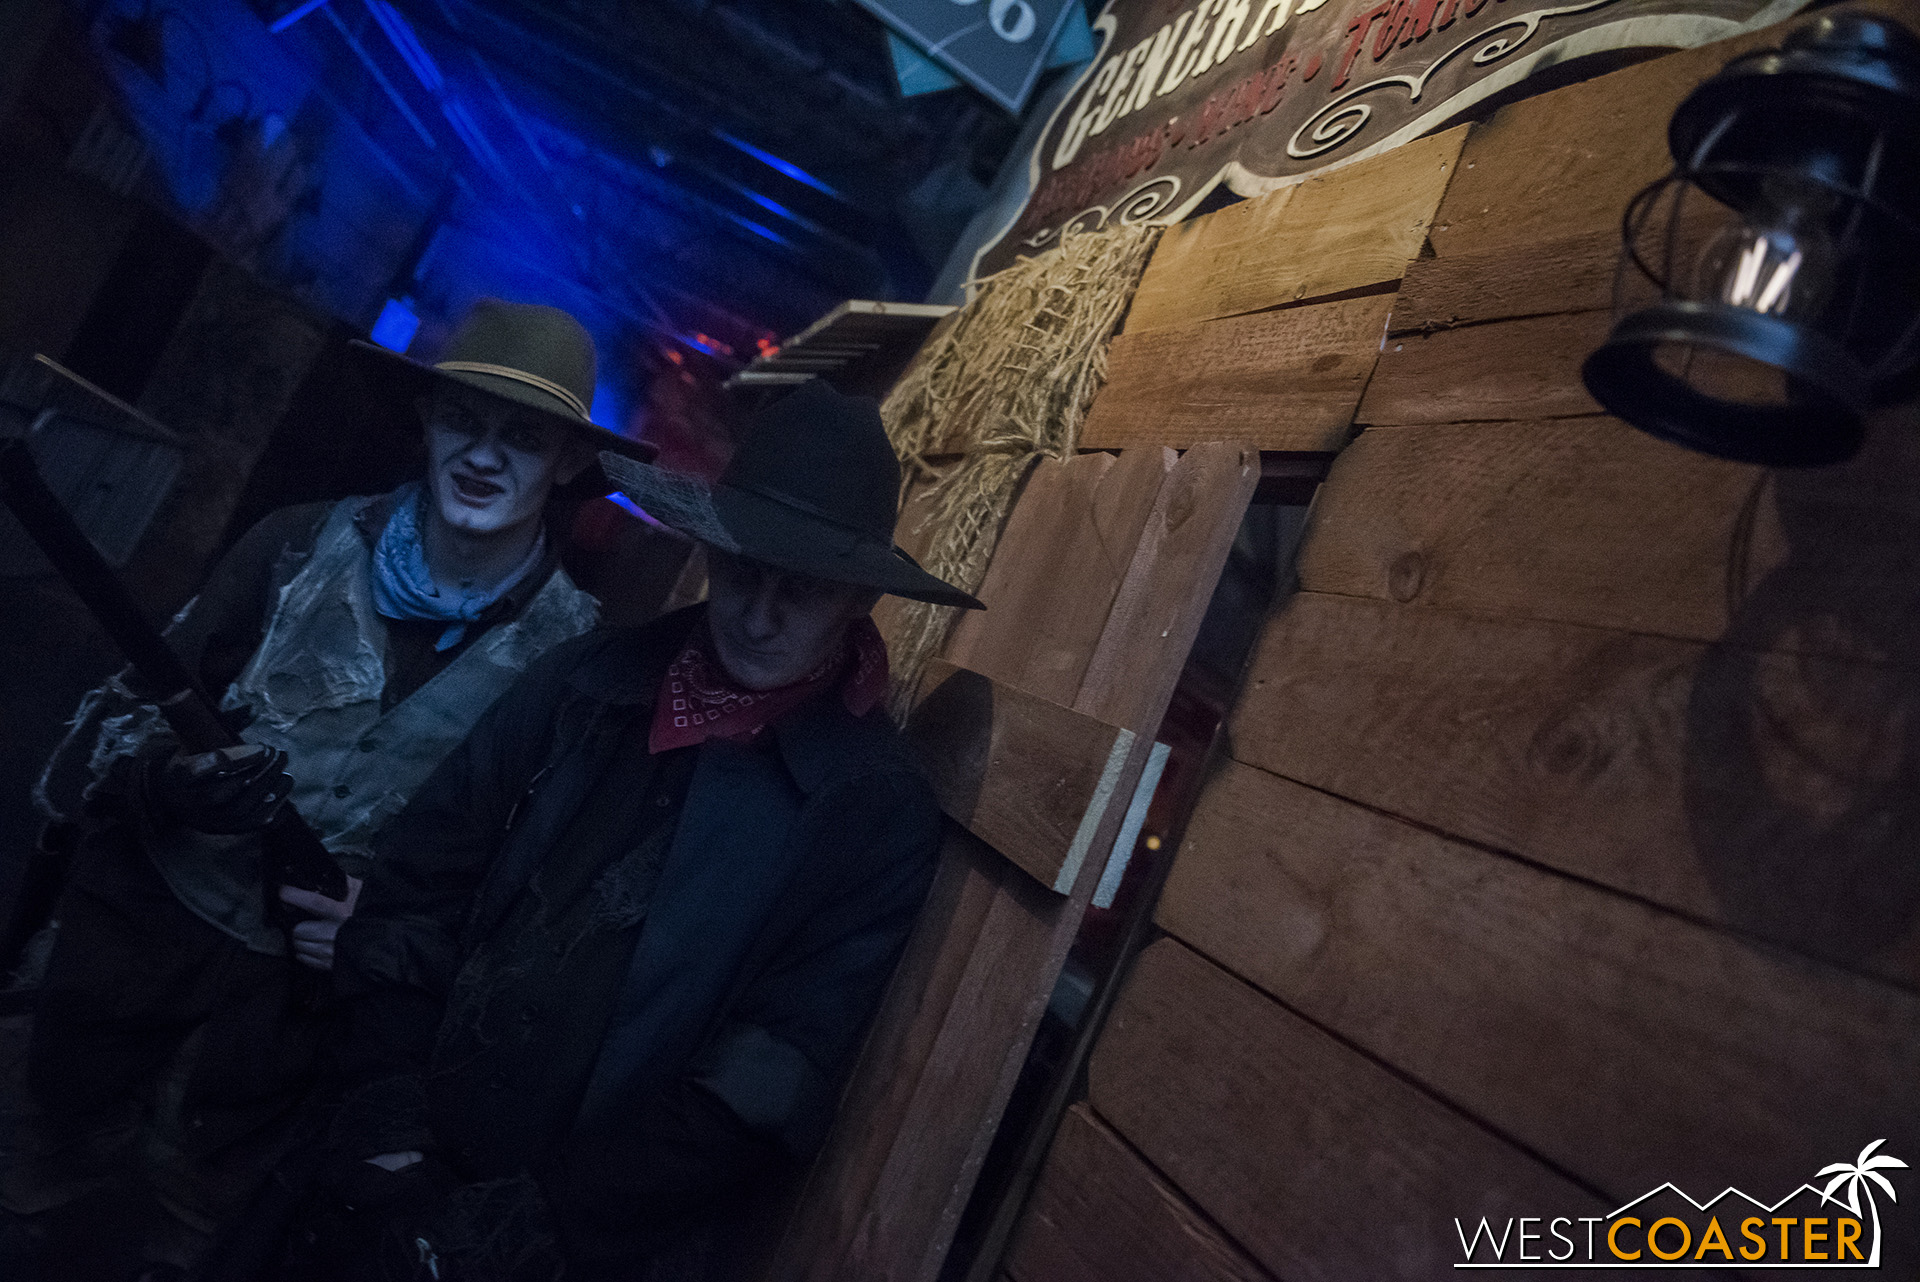 A more cohesive haunted Old West theme helped streamline the storytelling and provide a more fluid presentation.